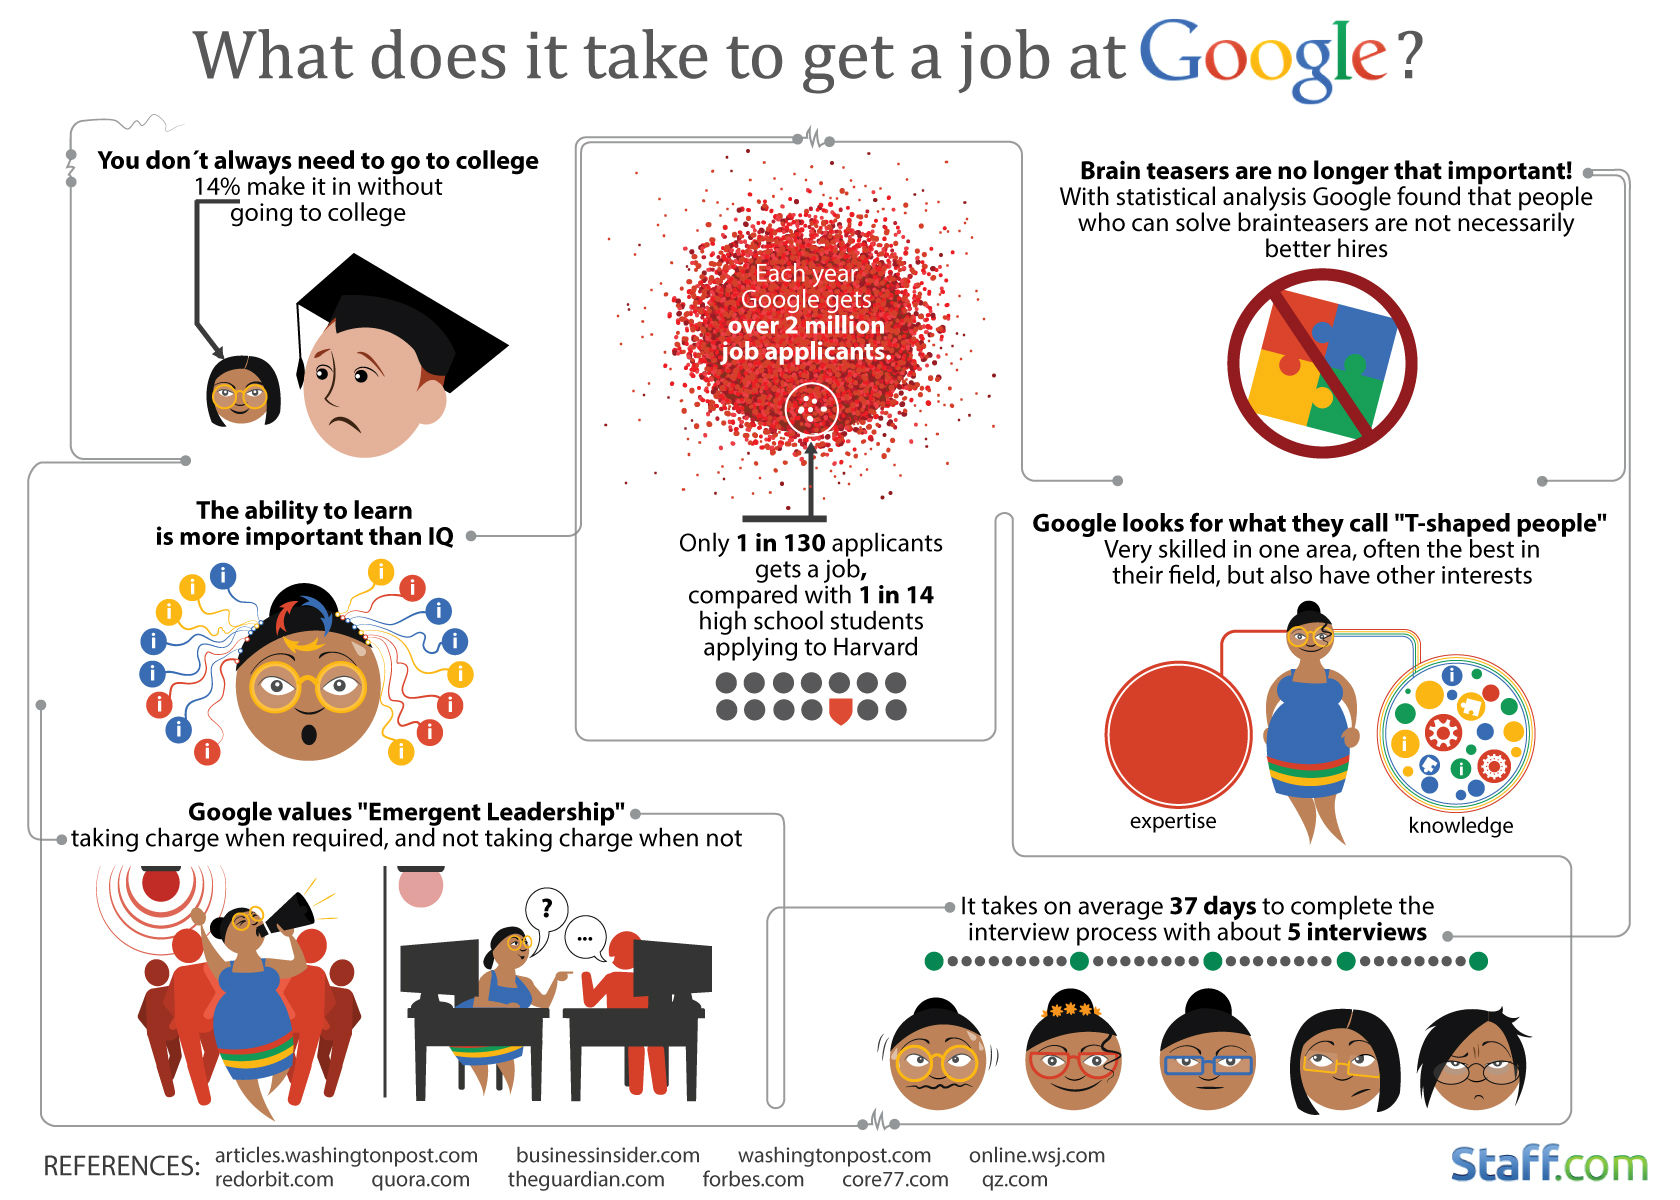 Getting A Job At Google [Infographic]